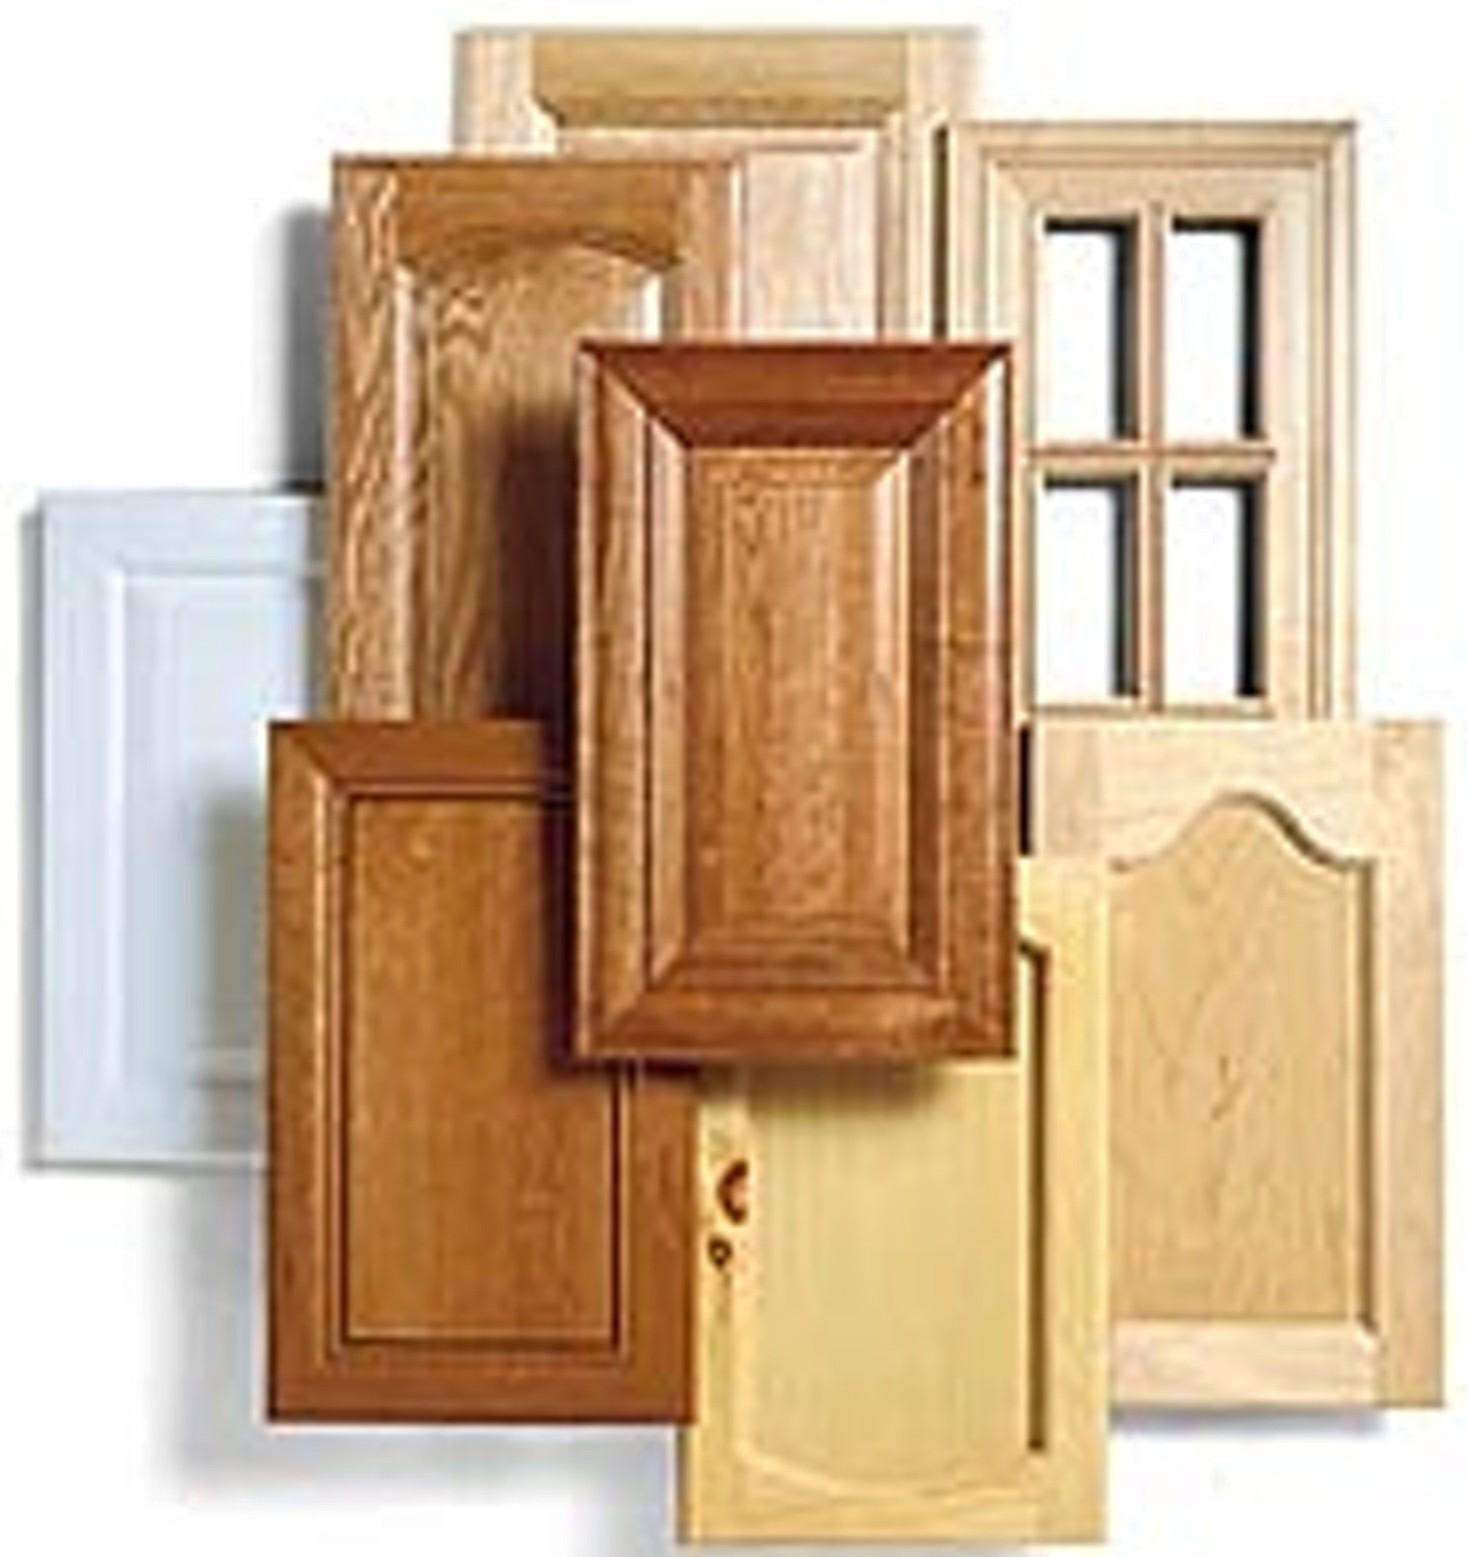 tomscabinets kitchen cabinet door replacement Decore Doors Cropped bytes